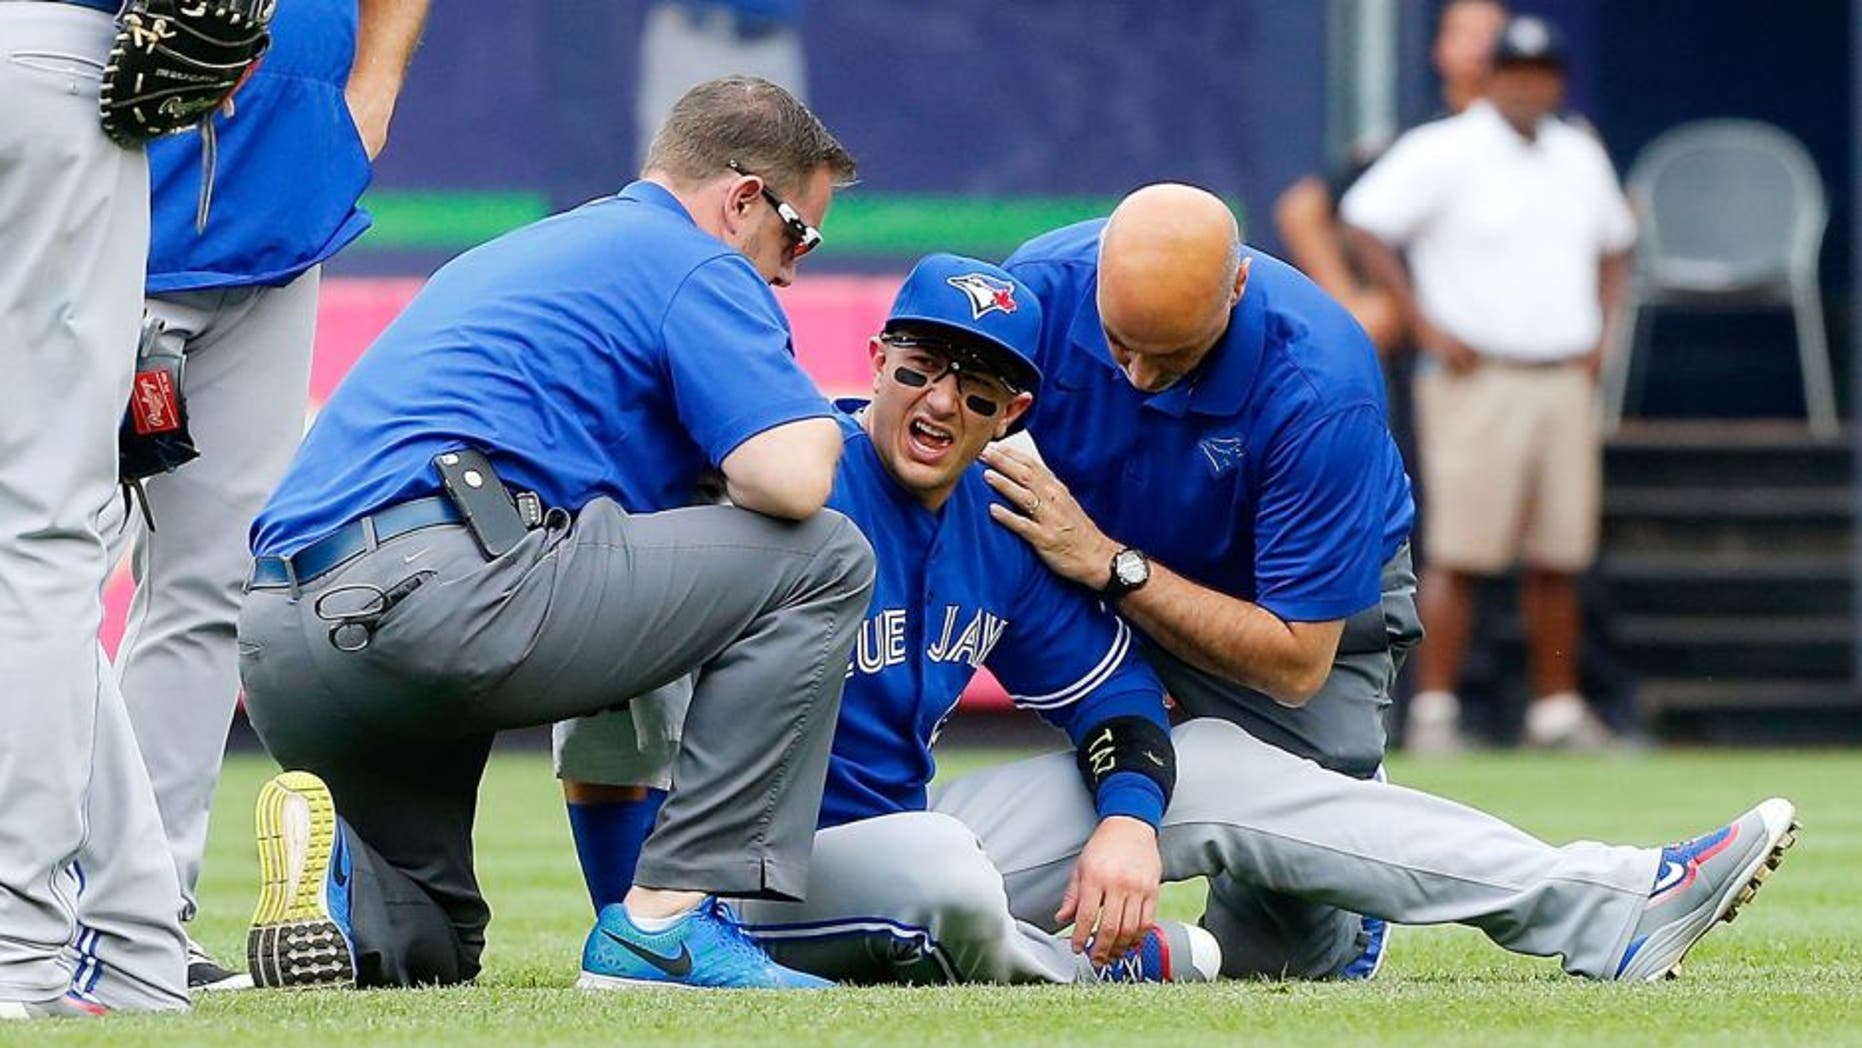 NEW YORK, NY - SEPTEMBER 12: Troy Tulowitzki #2 of the Toronto Blue Jays is tended to by team personnel after colliding with a teammate while making a catch for the final out of the second inning against the New York Yankees at Yankee Stadium on September 12, 2015 in the Bronx borough of New York City. (Photo by Jim McIsaac/Getty Images)